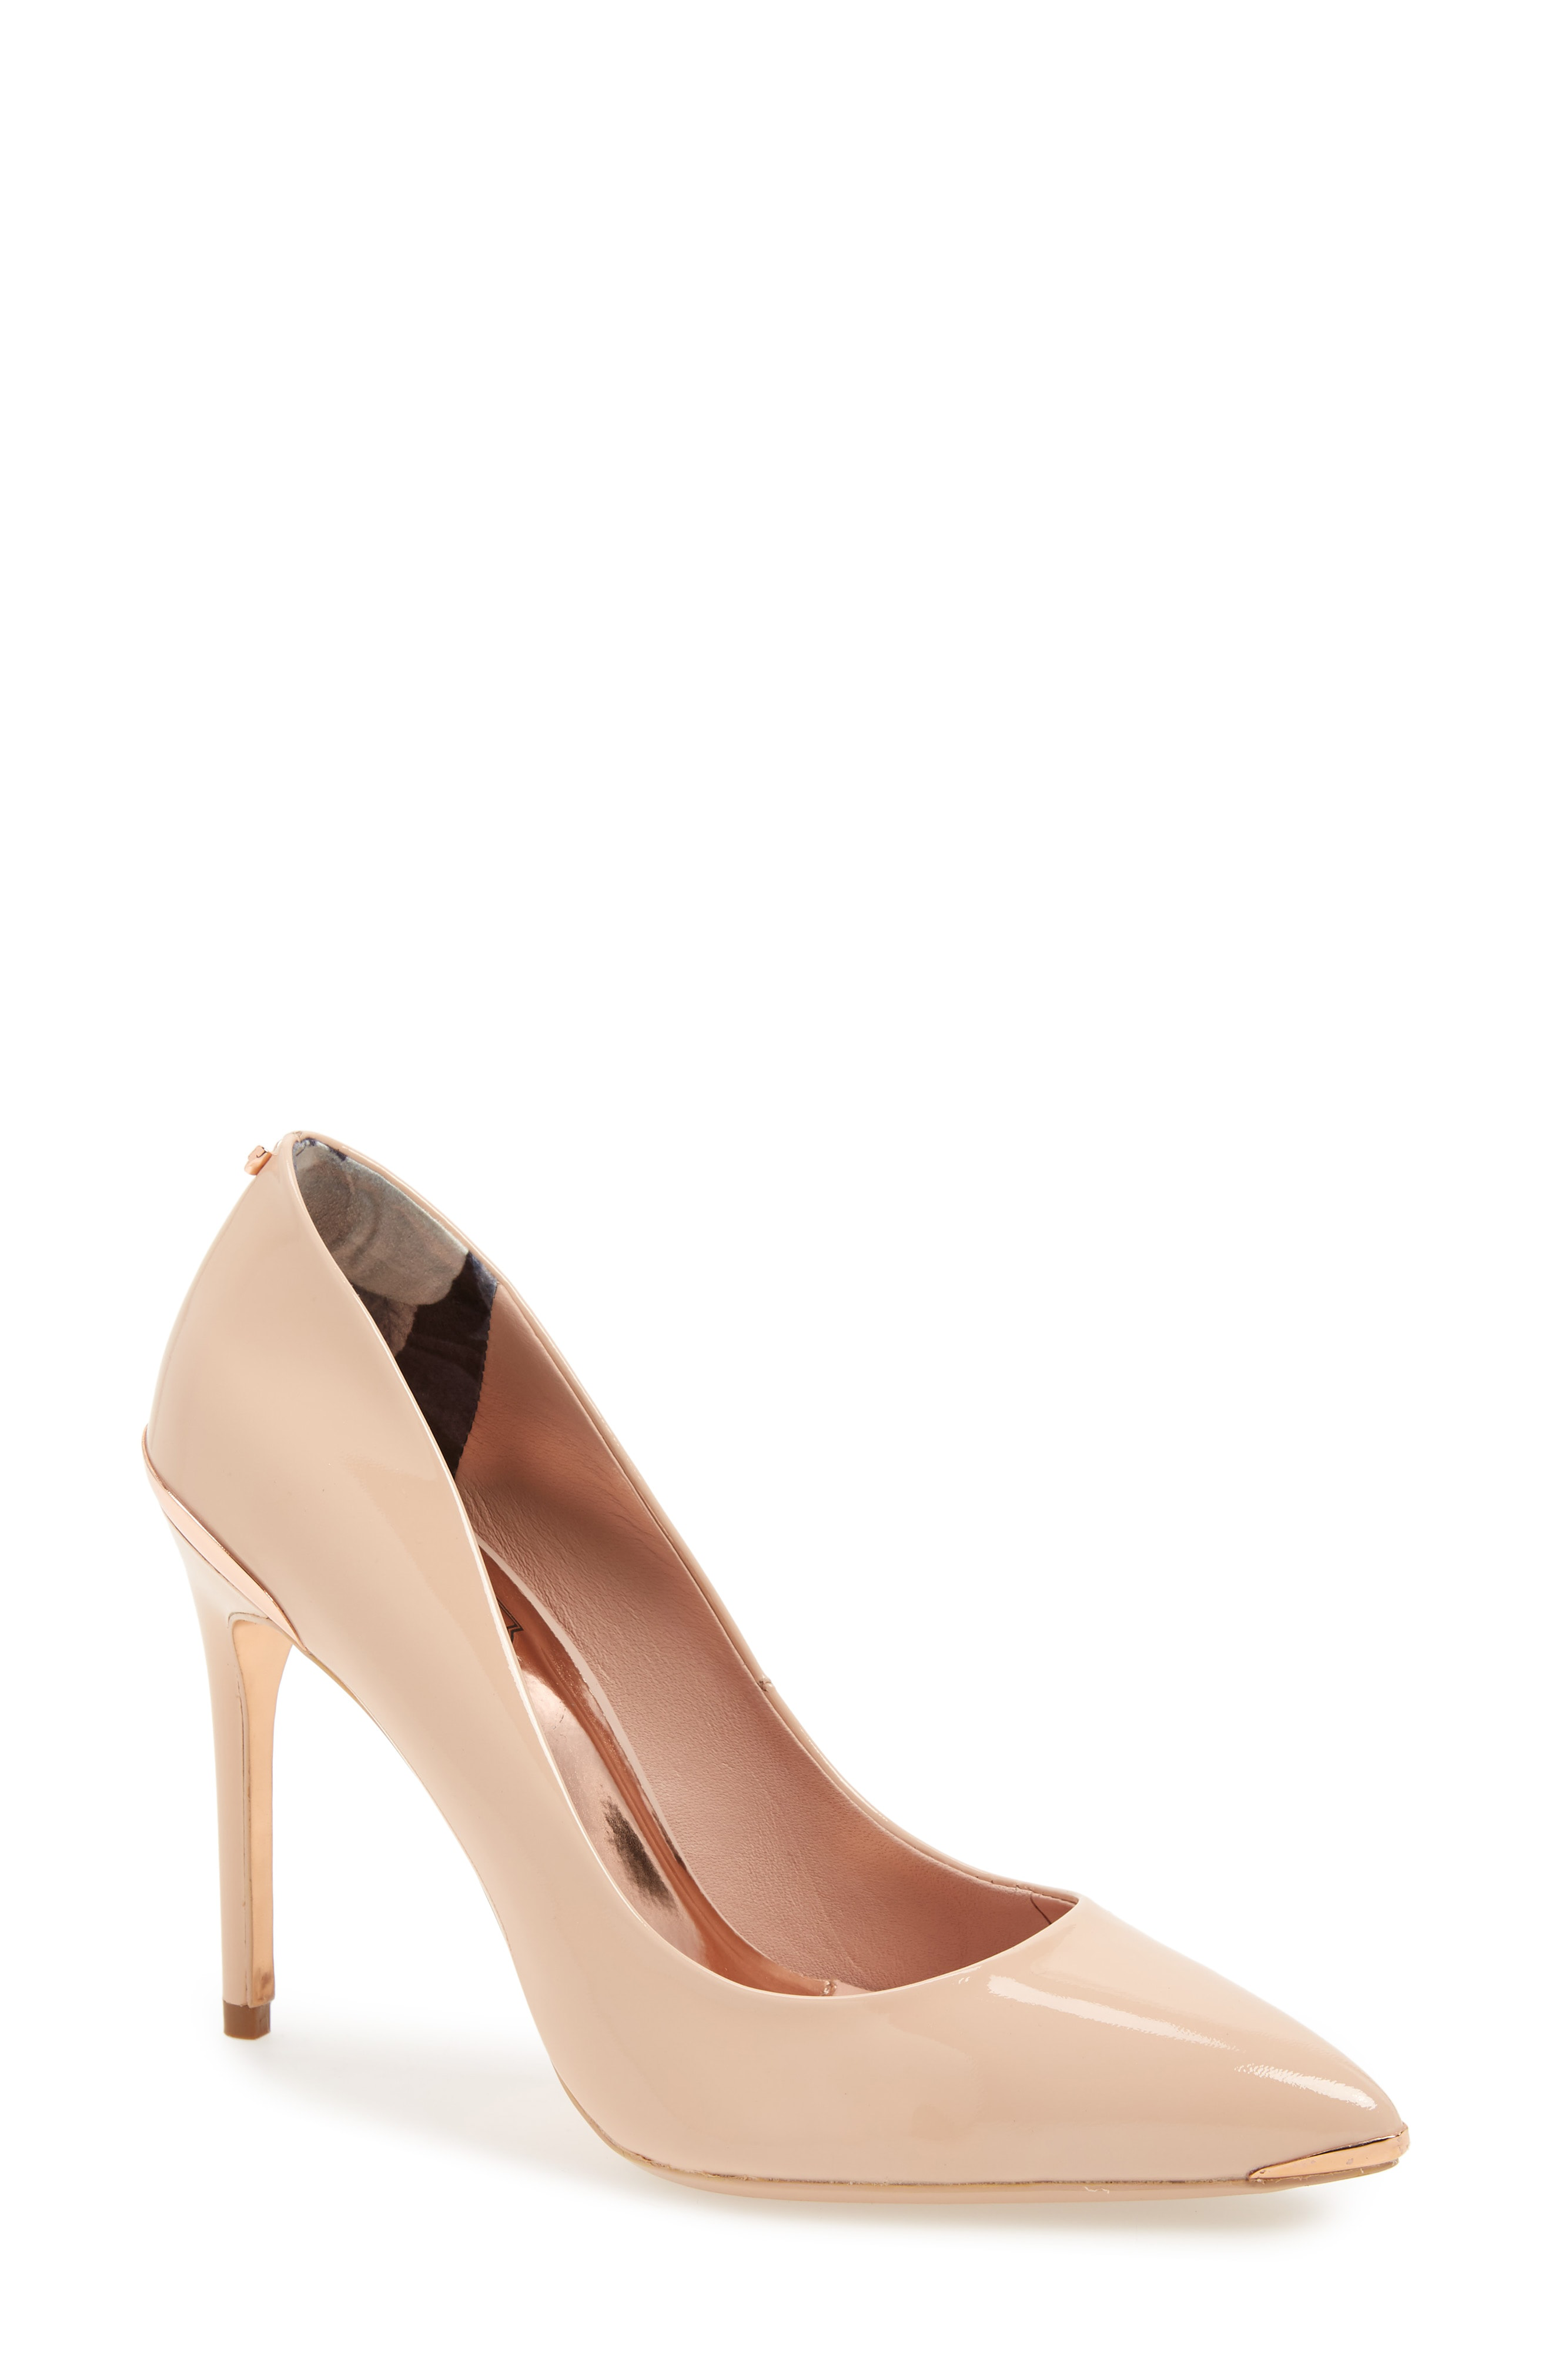 33bf01917680d Ted Baker Women s Izibela Pointed-Toe Pumps In Nude Patent Leather ...